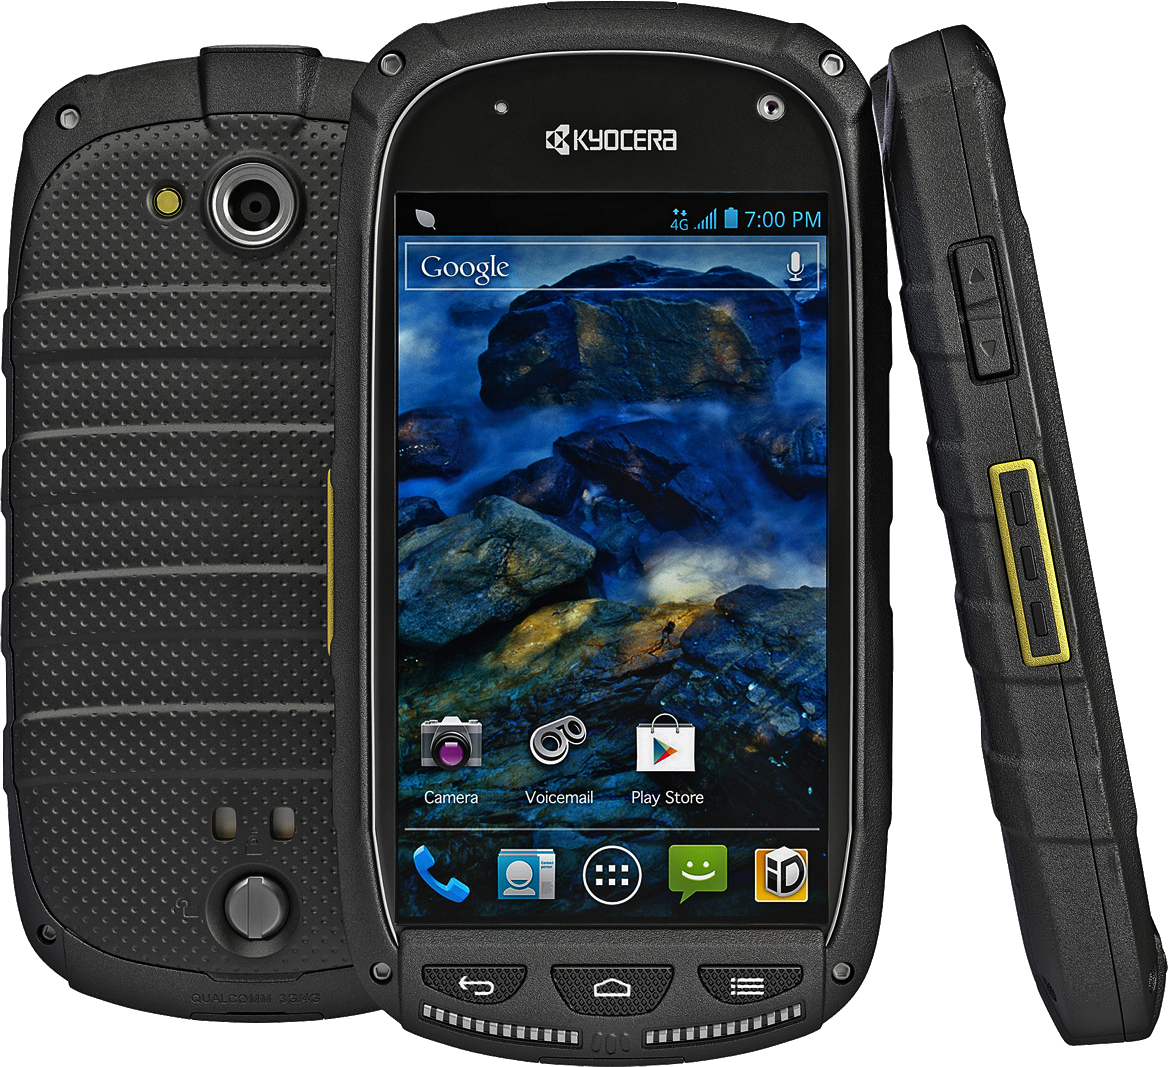 Kyocera Torque Rugged Android Smartphone For Sprint